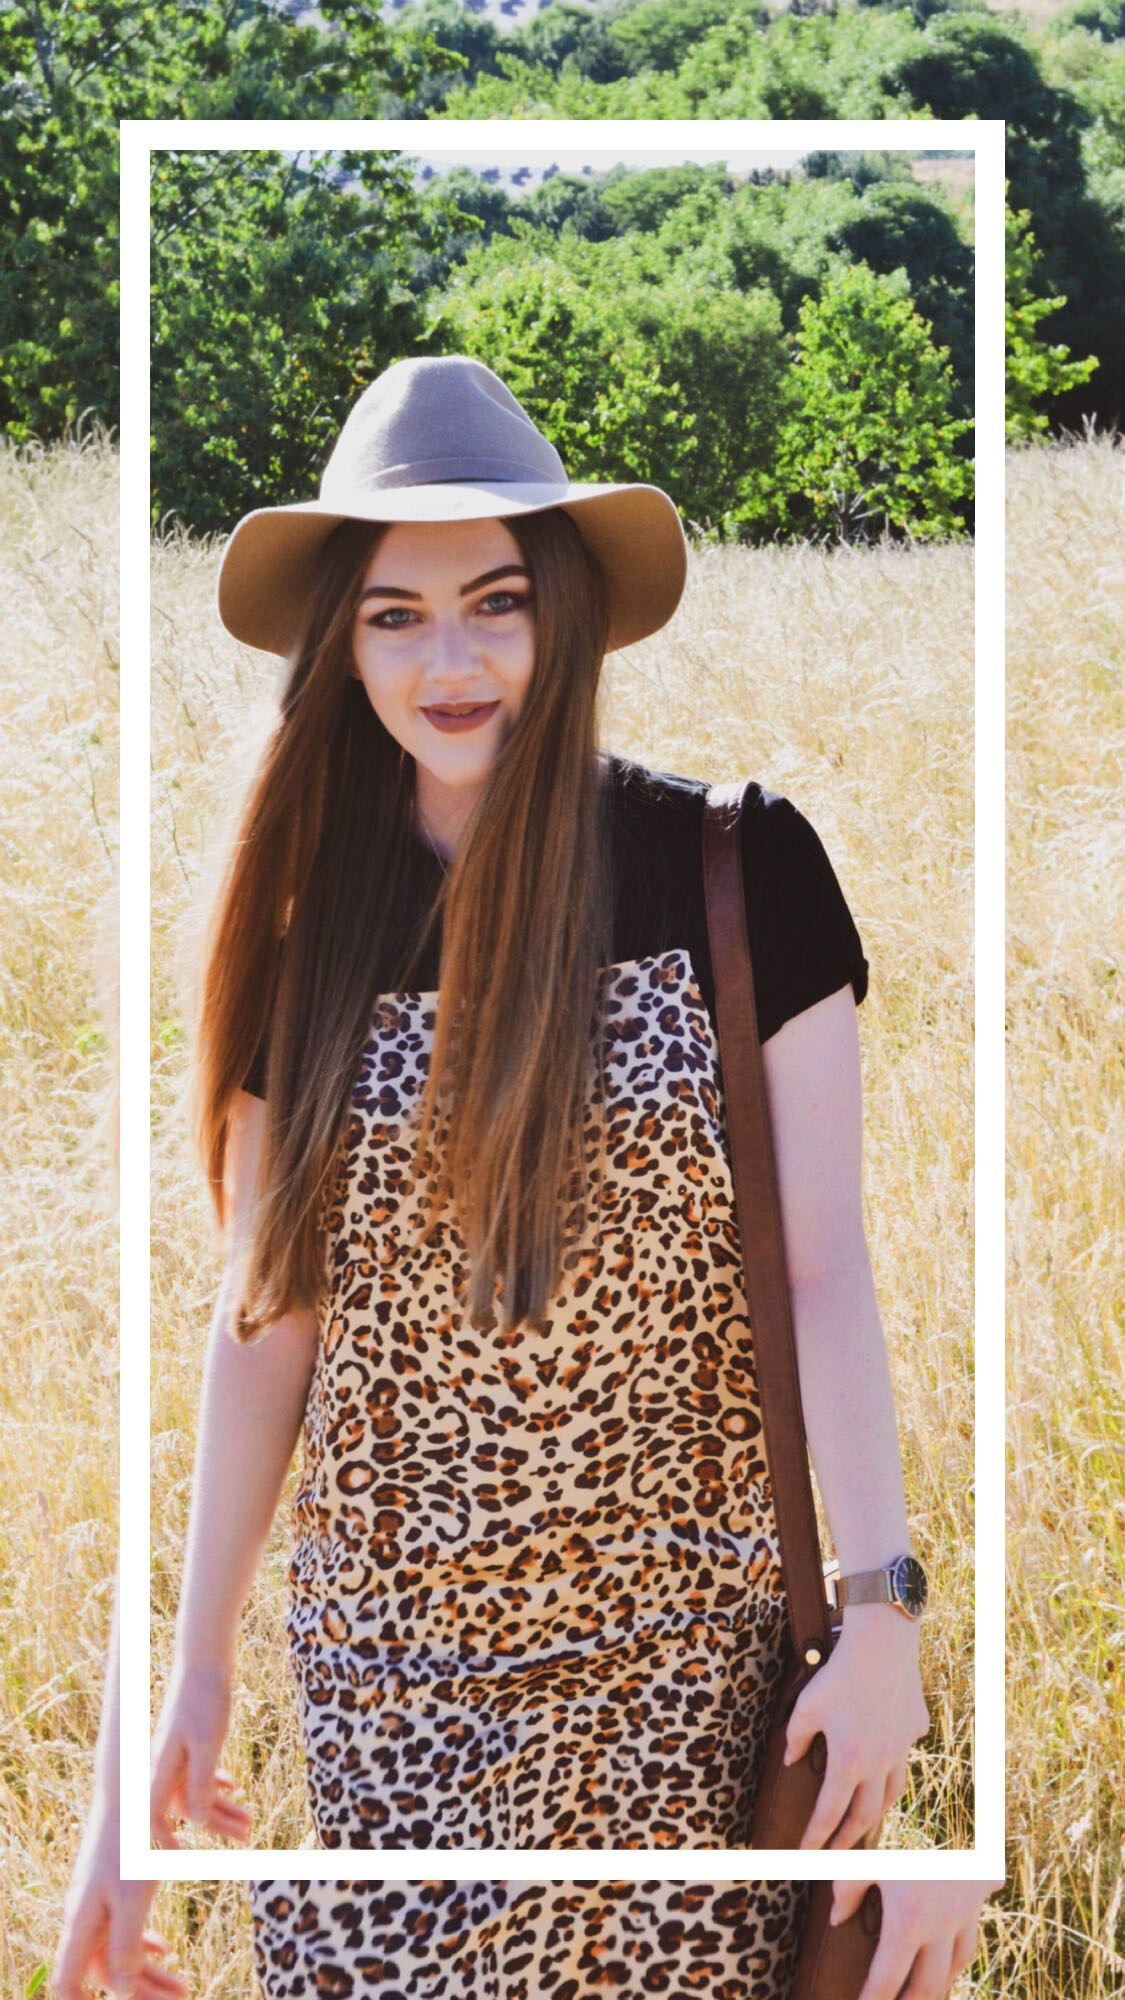 Buy X leopard feminine pieces want wardrobe pictures trends